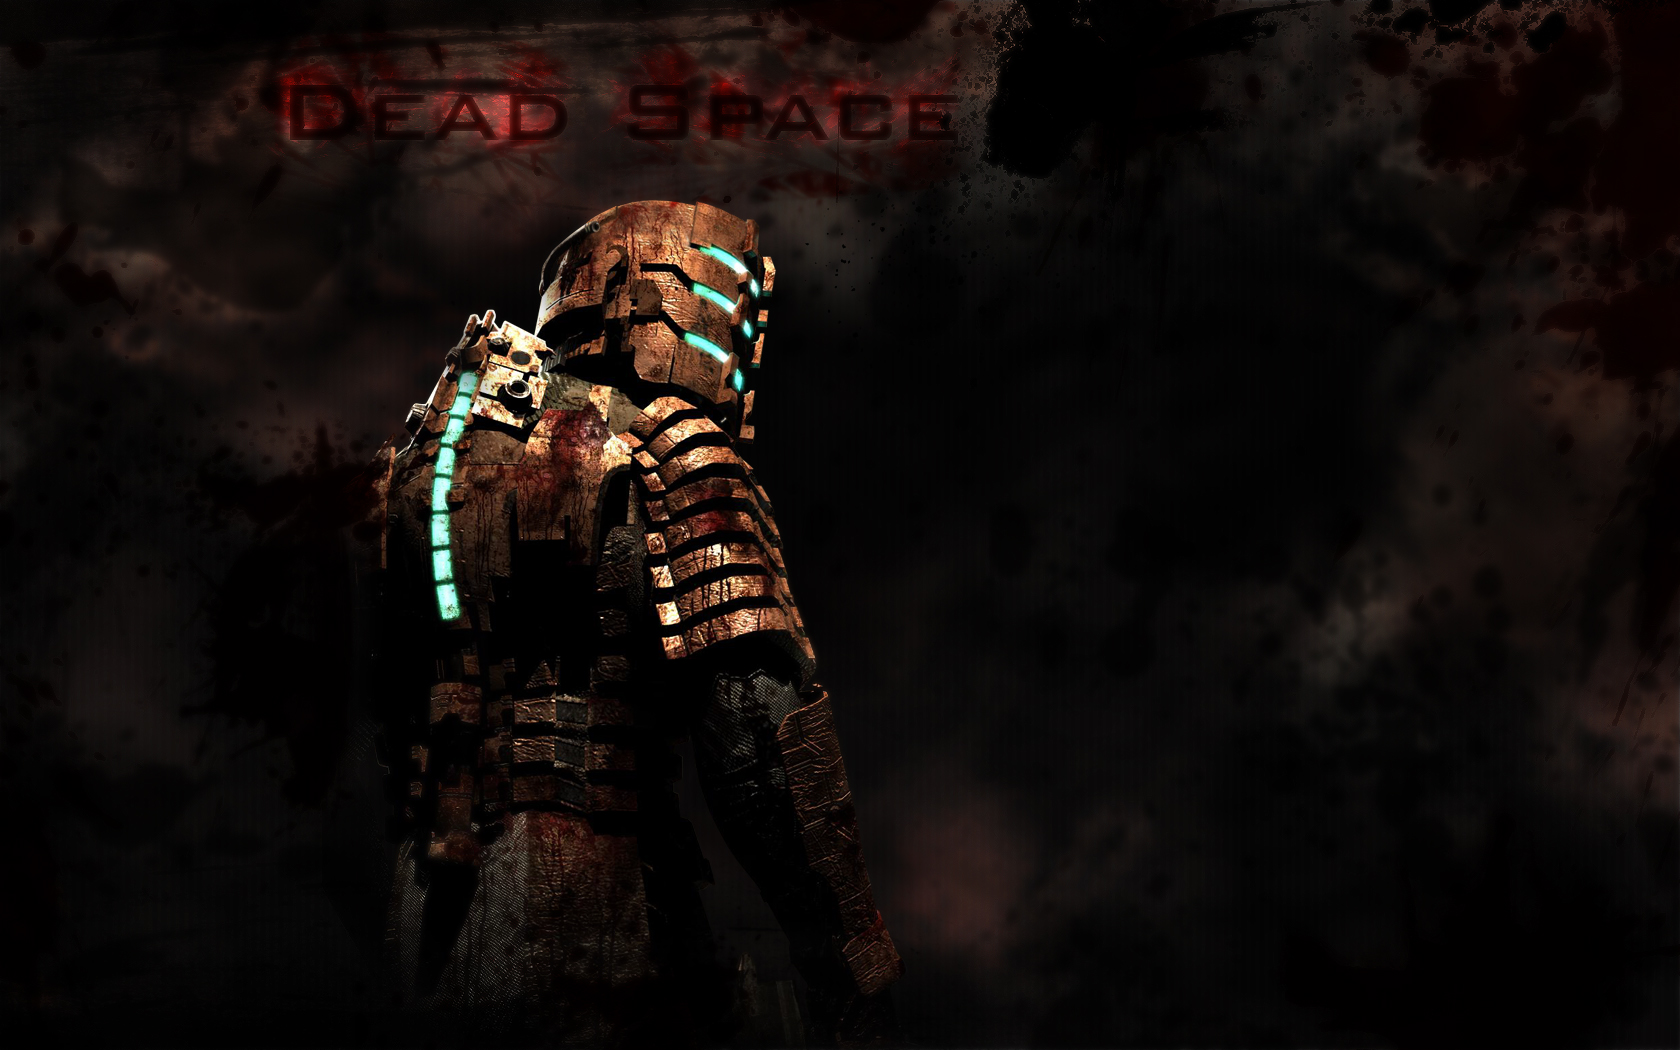 Dead Space Wallpaper   FREE DOWNLOAD HD WALLPAPERS 1680x1050